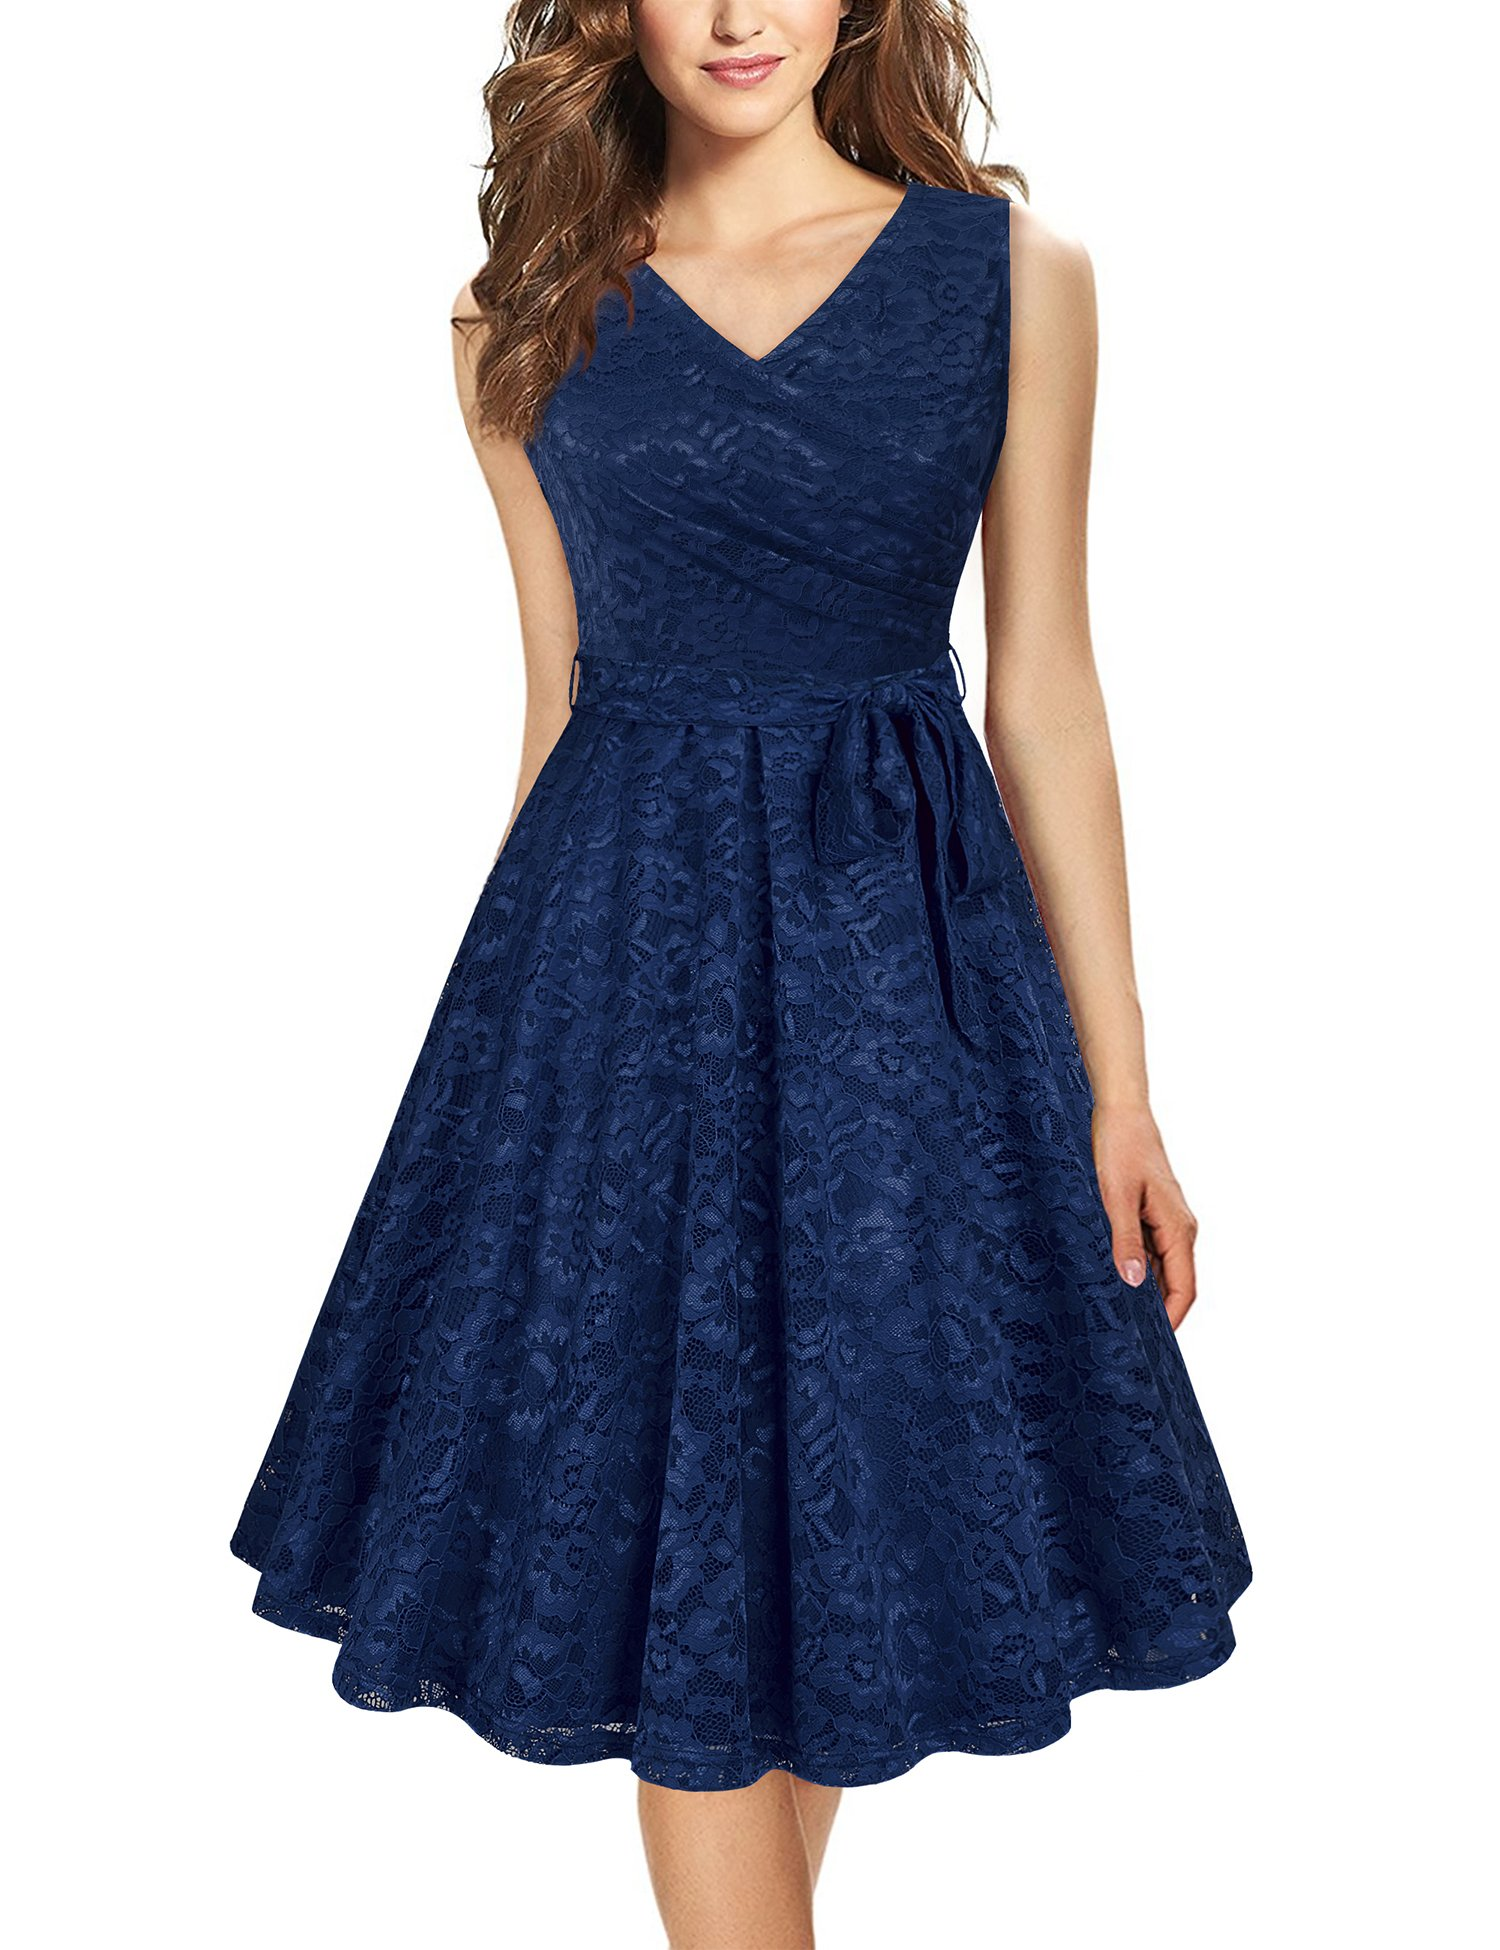 Laksmi Women Dress for Work,Womens Sleeveless Casual Soft Fit and Flare Simple Deep V Neck Lace Office Dress with Belt,Deep Blue XL